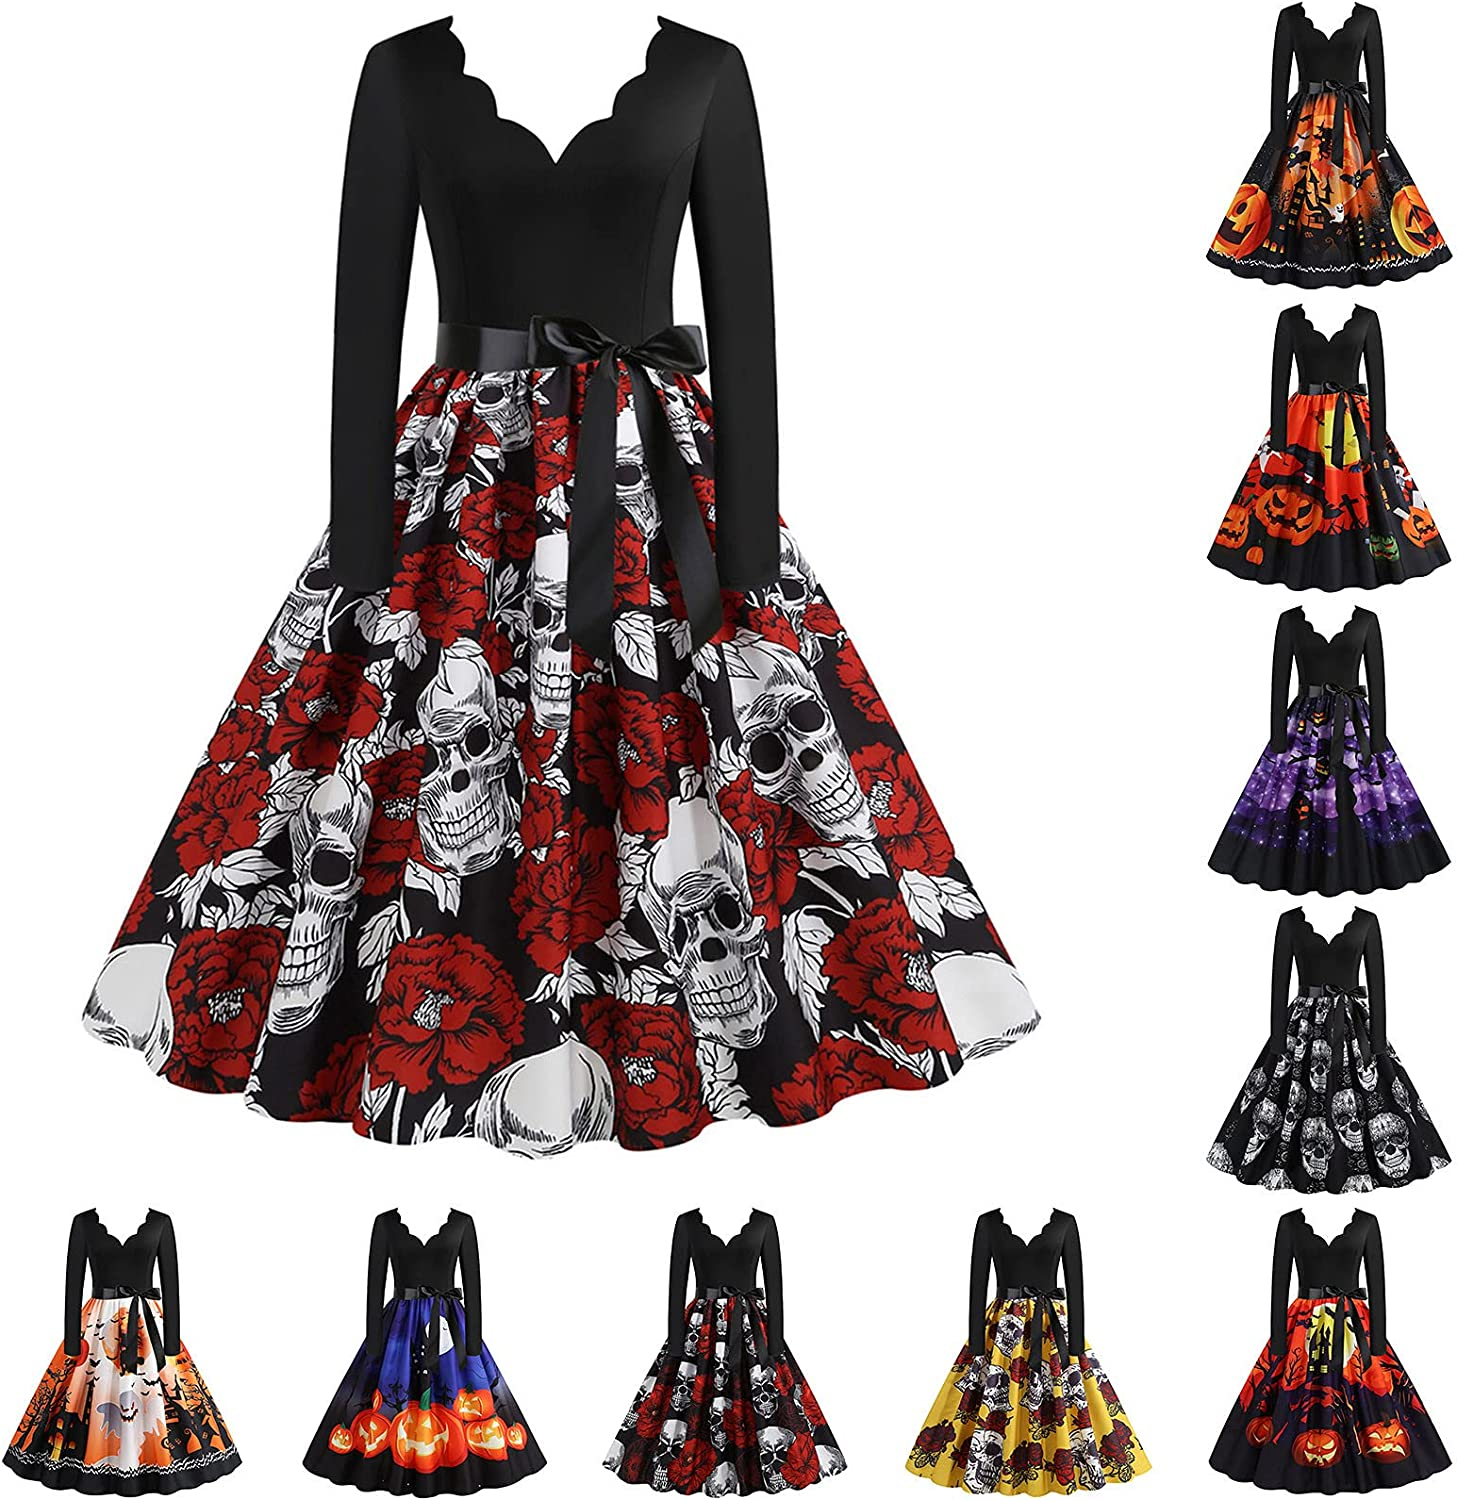 ORT Halloween Dress for Women Casual Summer Sexy Print V Neck Long Sleeve Short Mini Backless Dress Cocktail Party